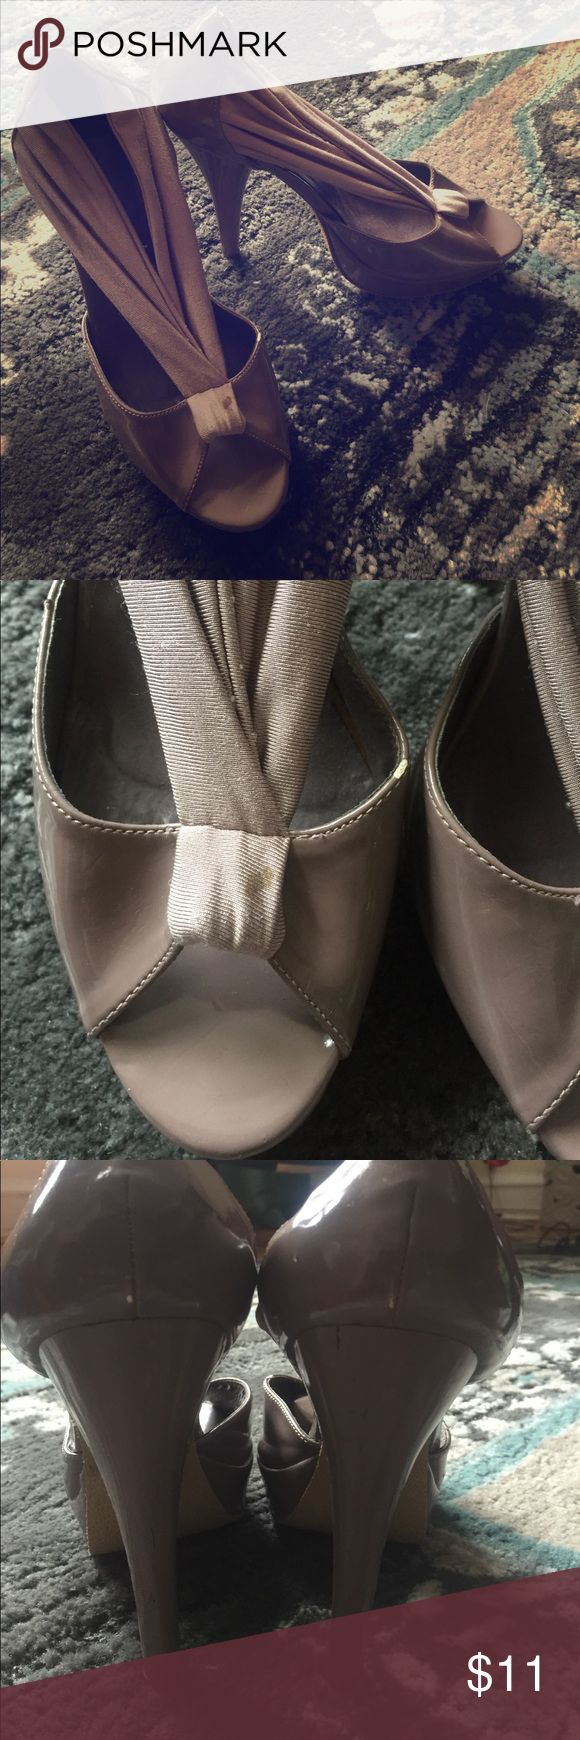 Madden Girl Mauve high heels Gorgeous heels. Some stains and scratches. Please look at photos for details.  That is why I am listing them for such a low price.  It says size 8.5 but these run big more like size 9 to 9 1/2 so I am listing these as size 9. Man made upper. Synthetic sole. 5 inch heels Madden Girl Shoes Heels